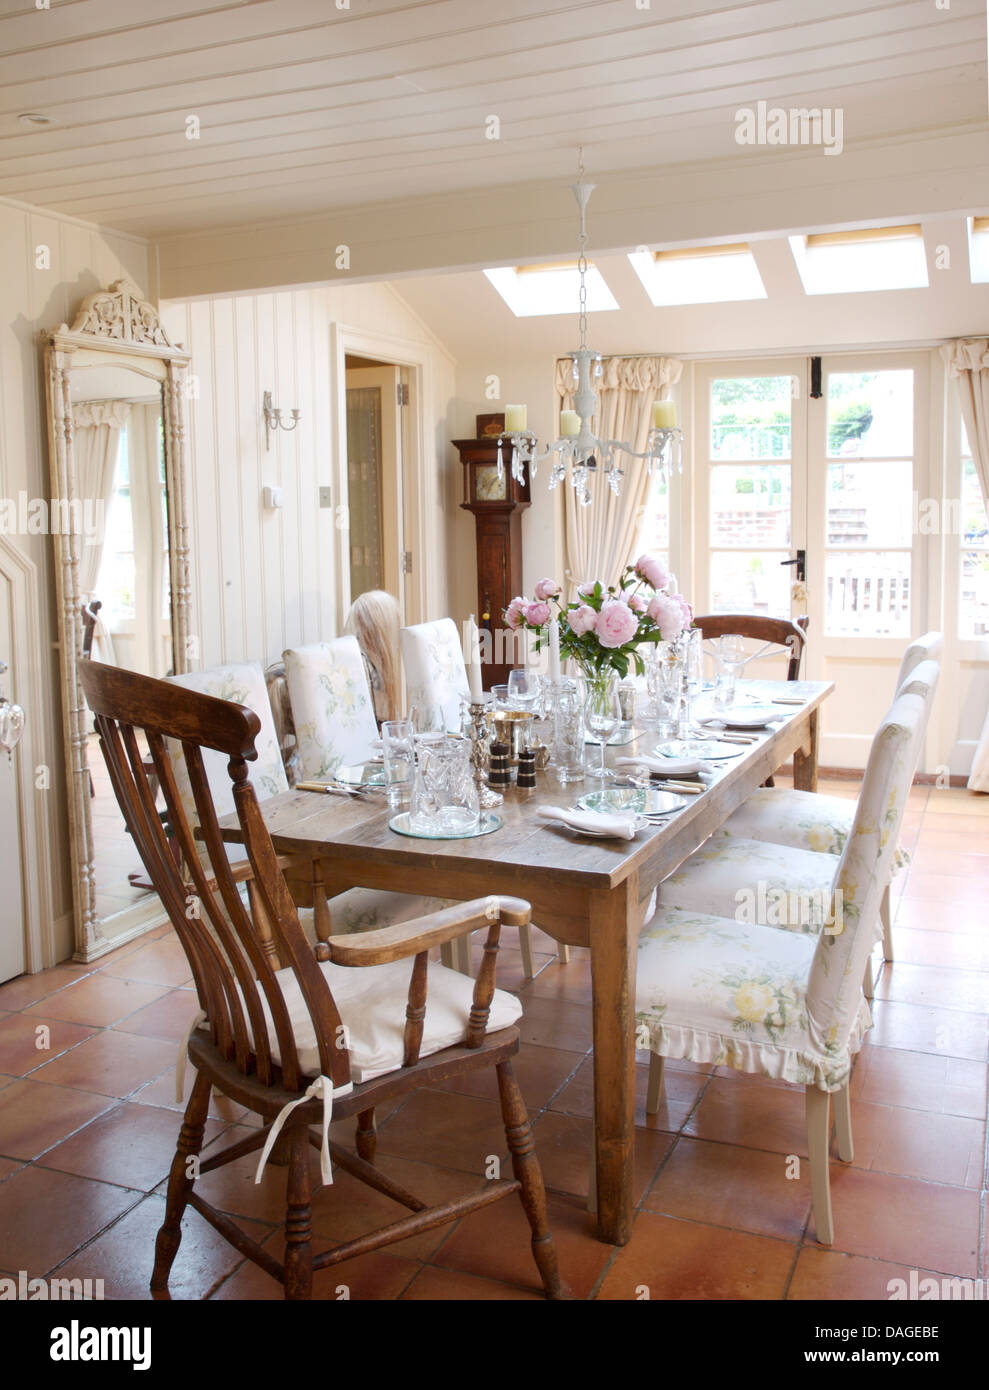 Antique Windsor Carver Chair And Chairs With Loose Covers At Simple Wooden  Table Set For Lunch